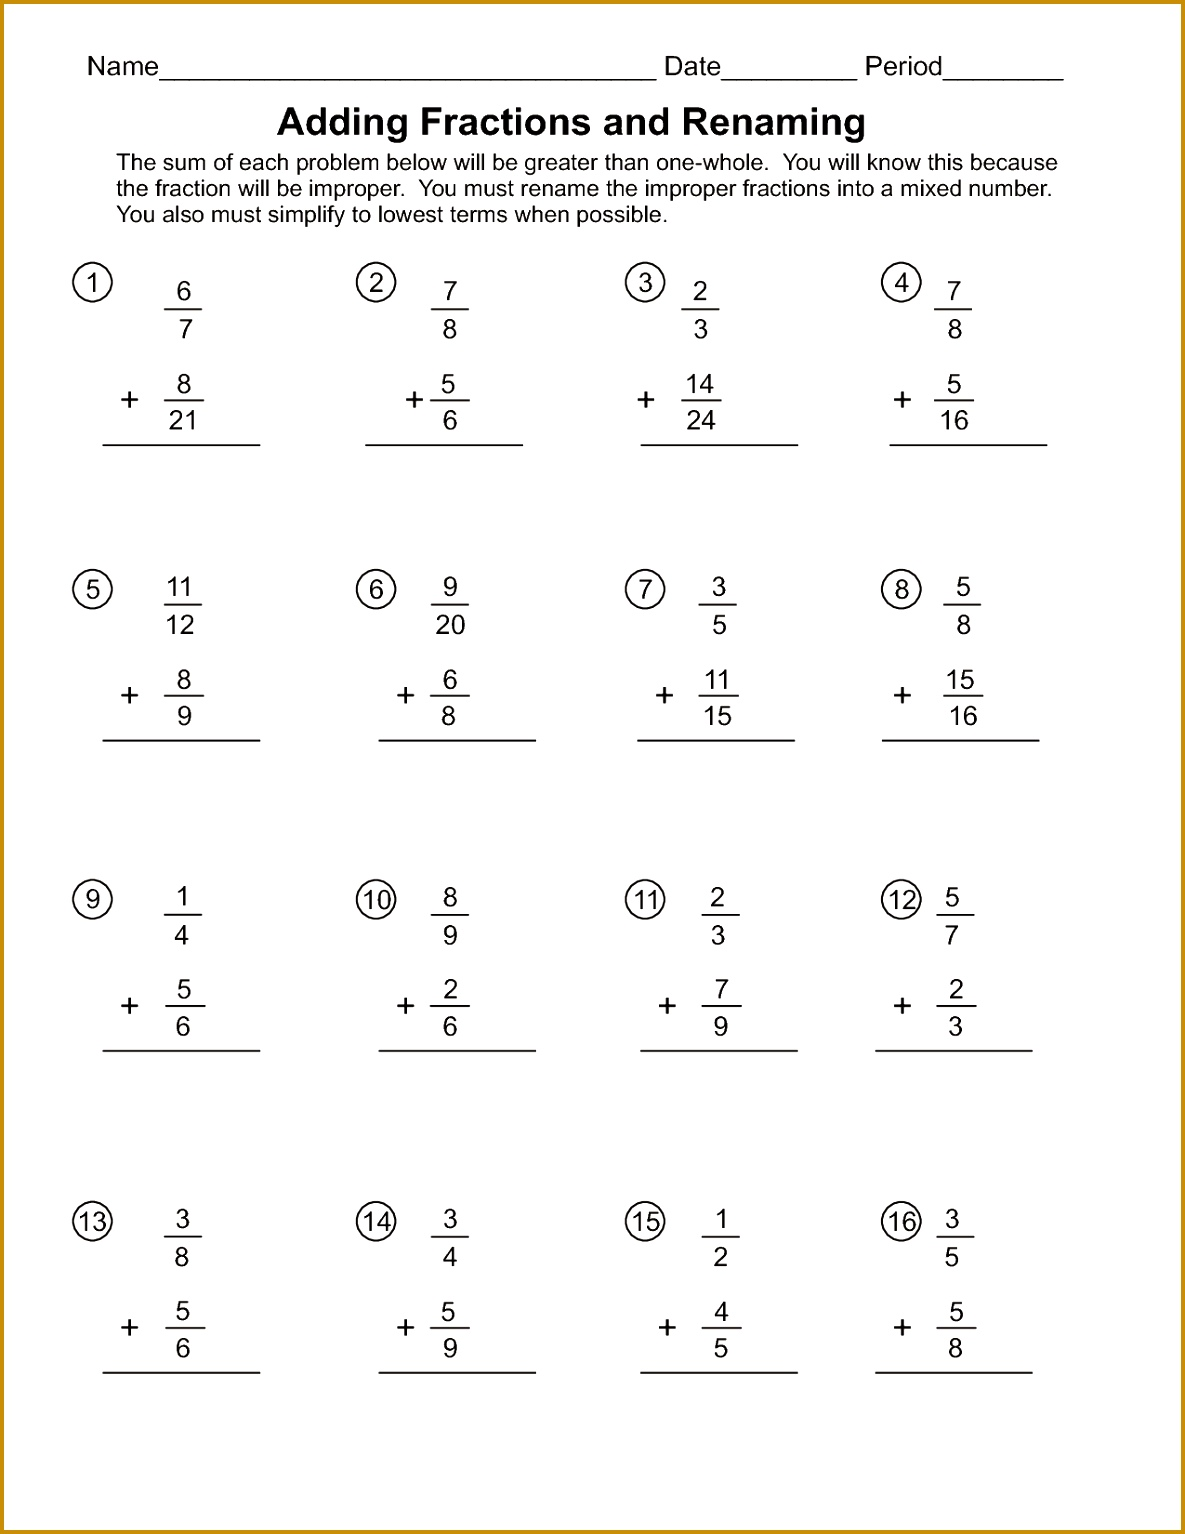 Worksheet On Addition Of Fractions